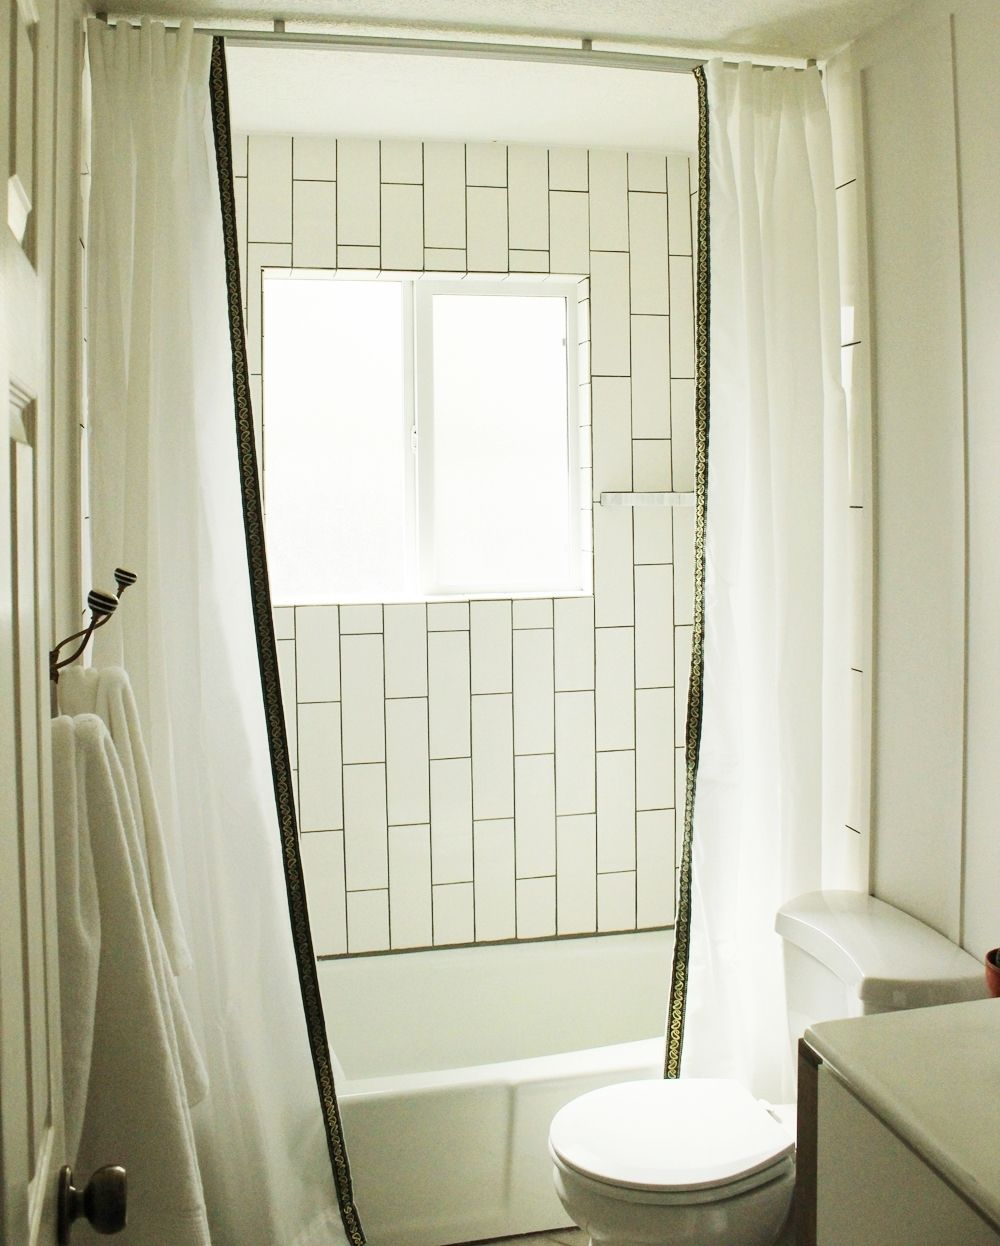 How To Clean Bathroom Tile: 10 Basic Tips On How To Clean Bathroom Tiles And The